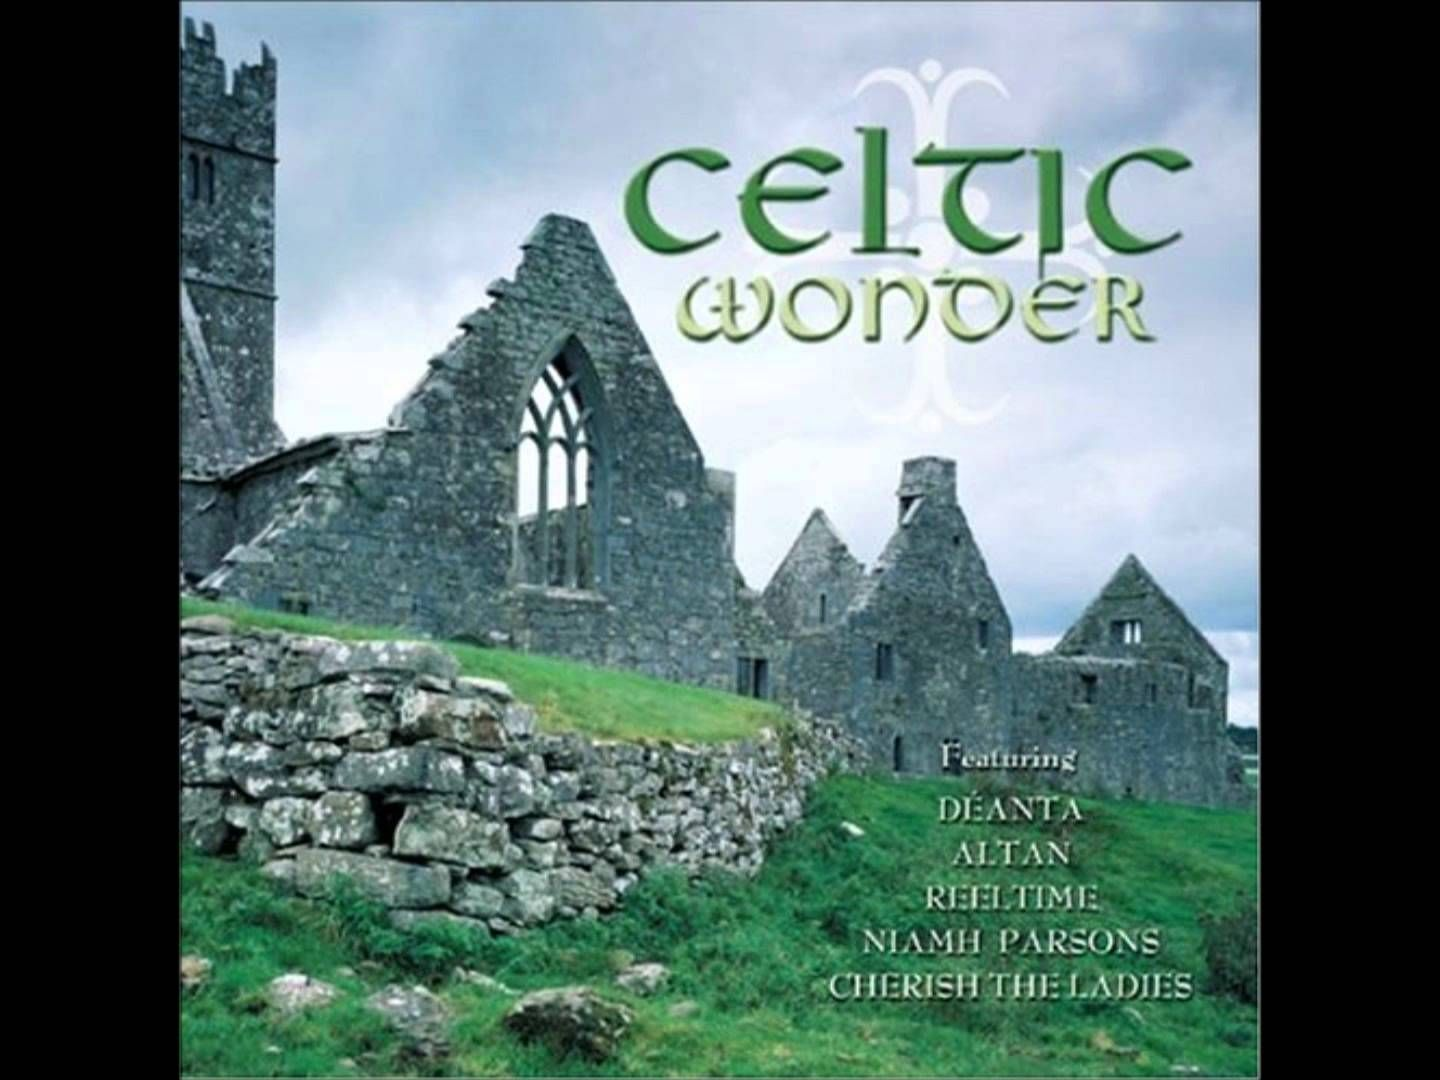 The Maid That Sold Her Barley Deanta Celtic music